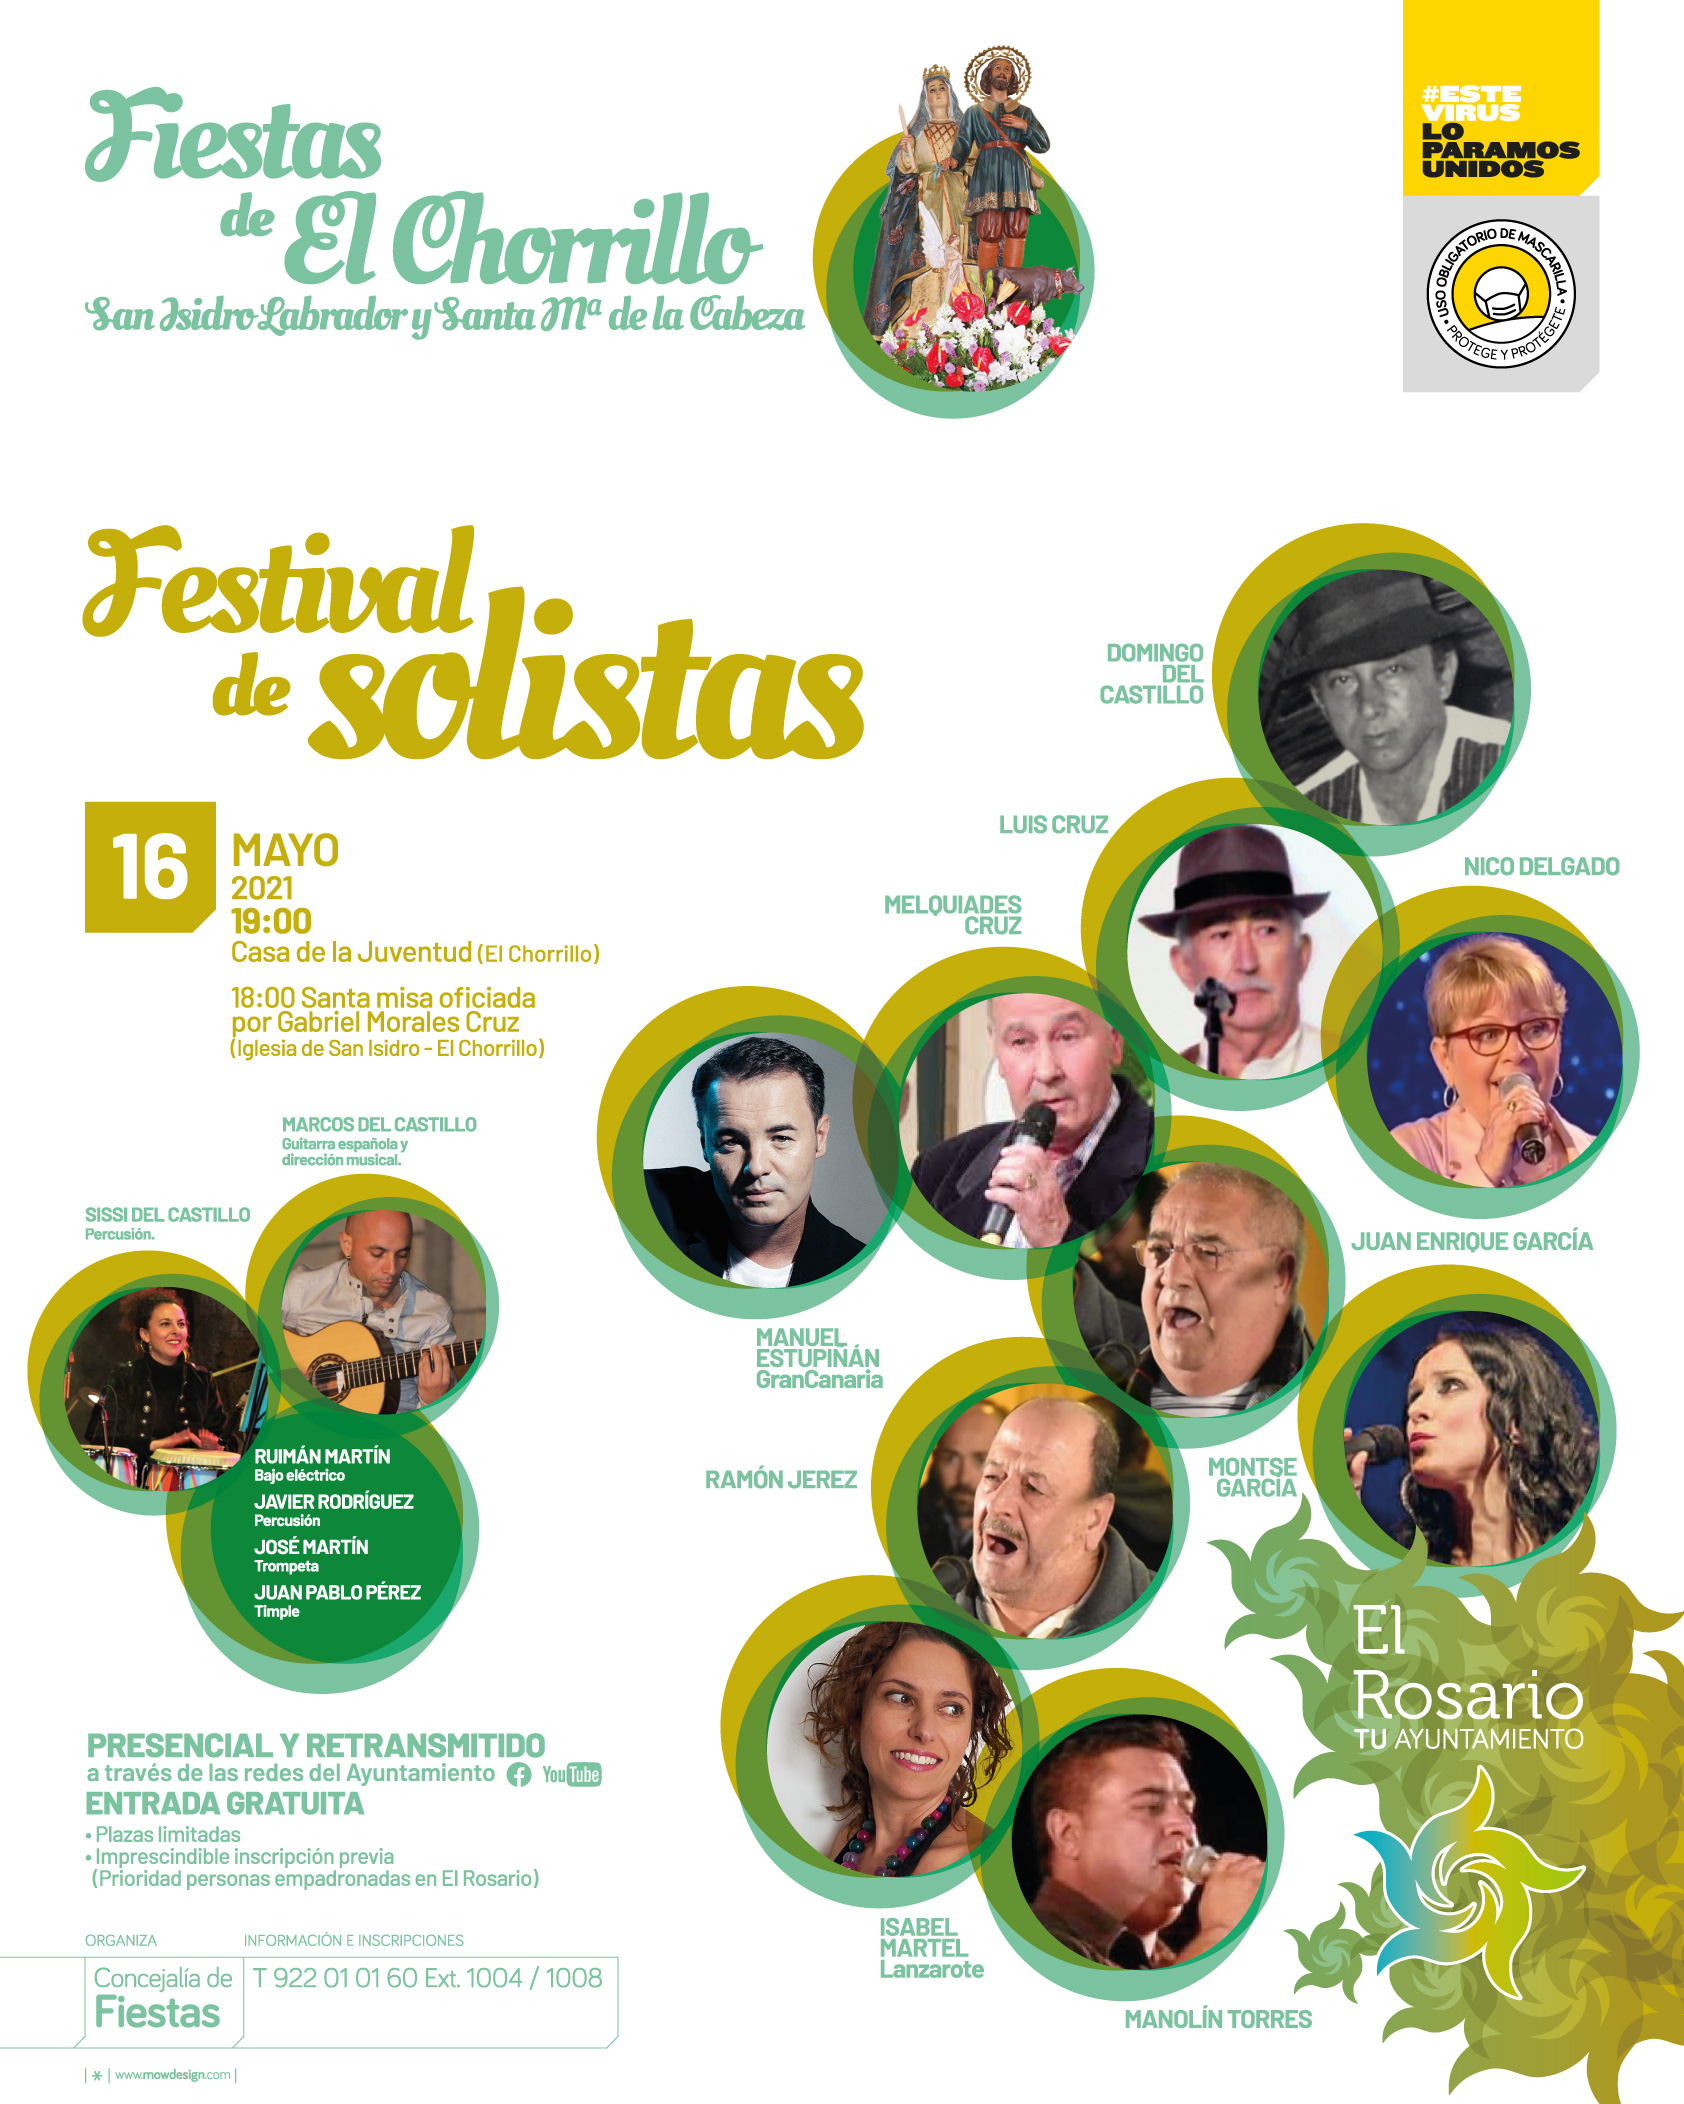 FIESTA-S_ISIDRO-S_CABEZA-20210516-CARTEL_A3-20210510-02af-redes